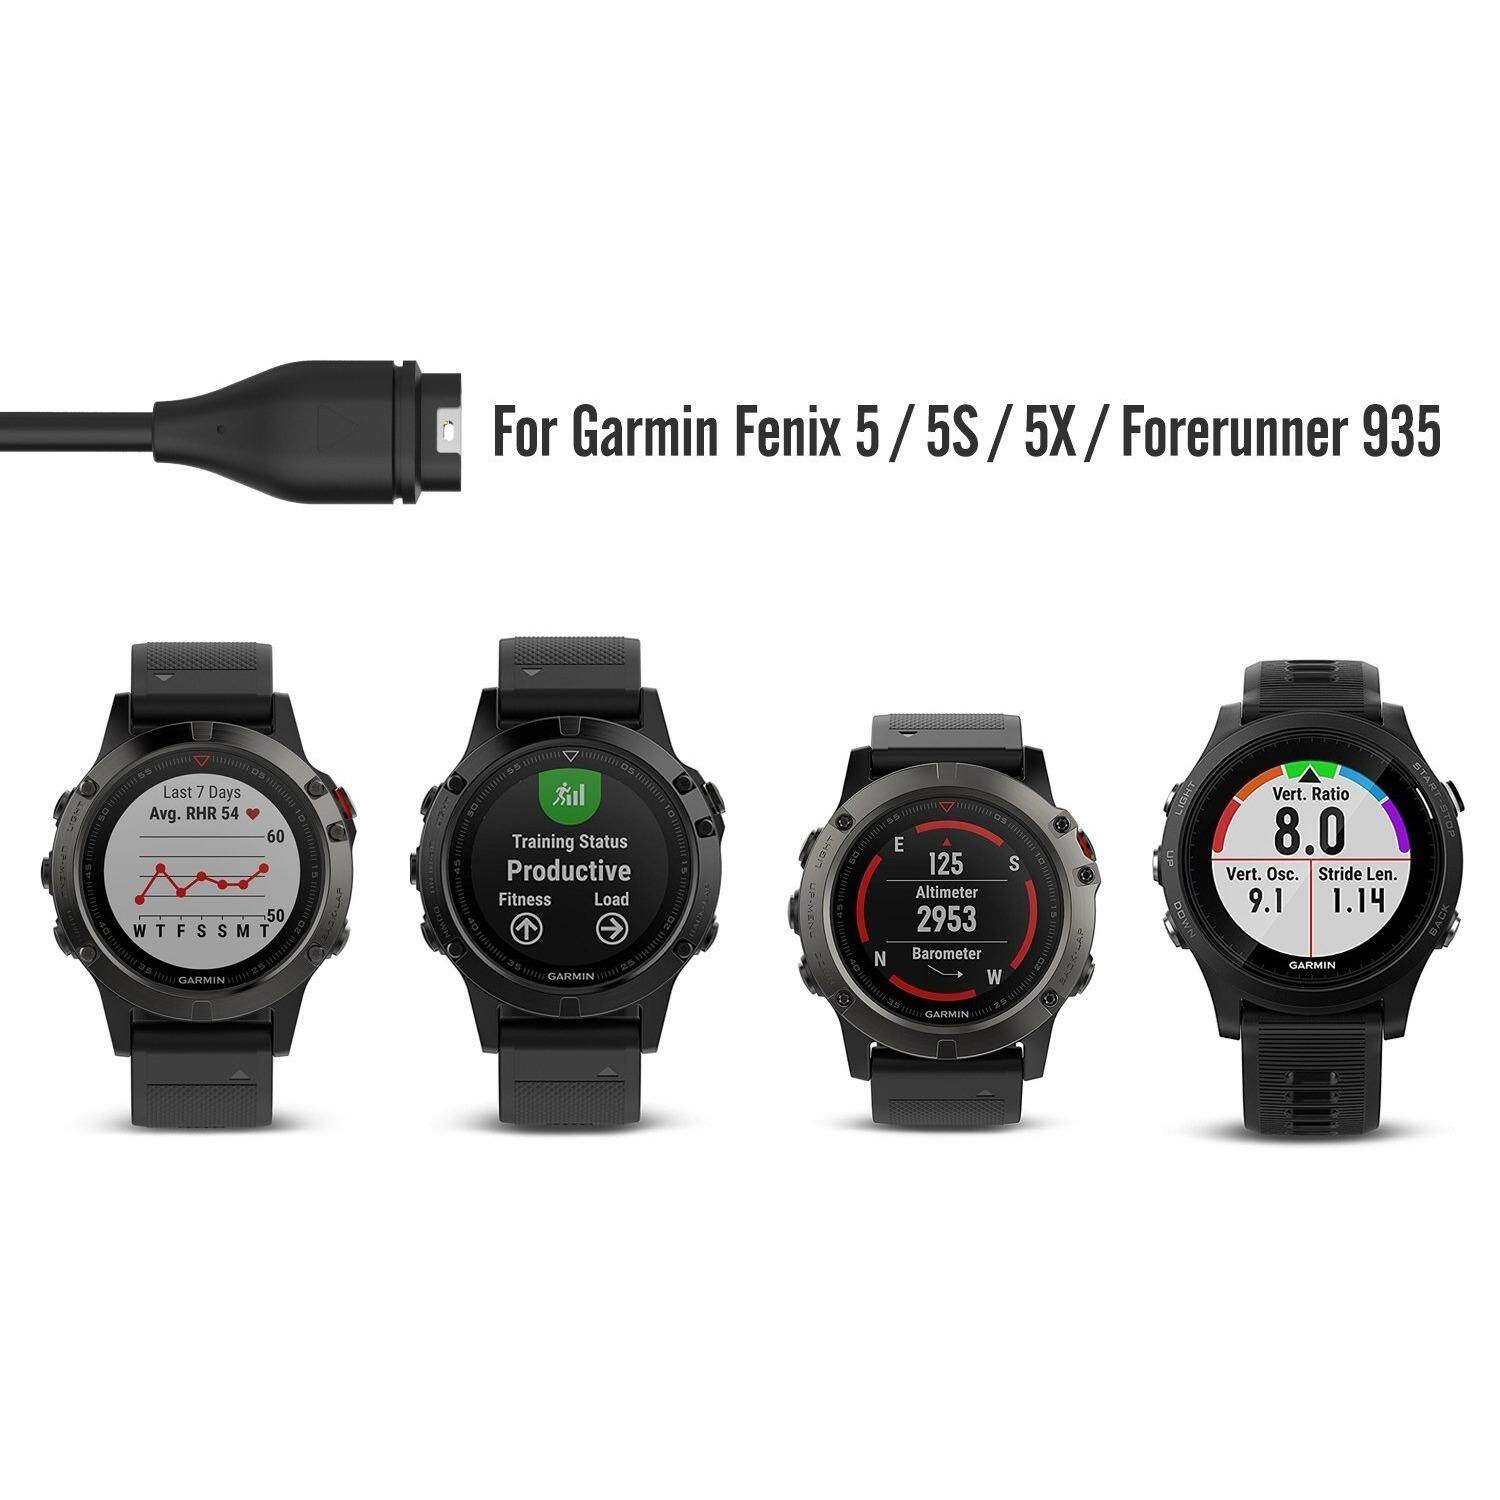 สายชาร์จ  Charger for Garmin Fenix 5 / 5S / 5X / Forerunner 935